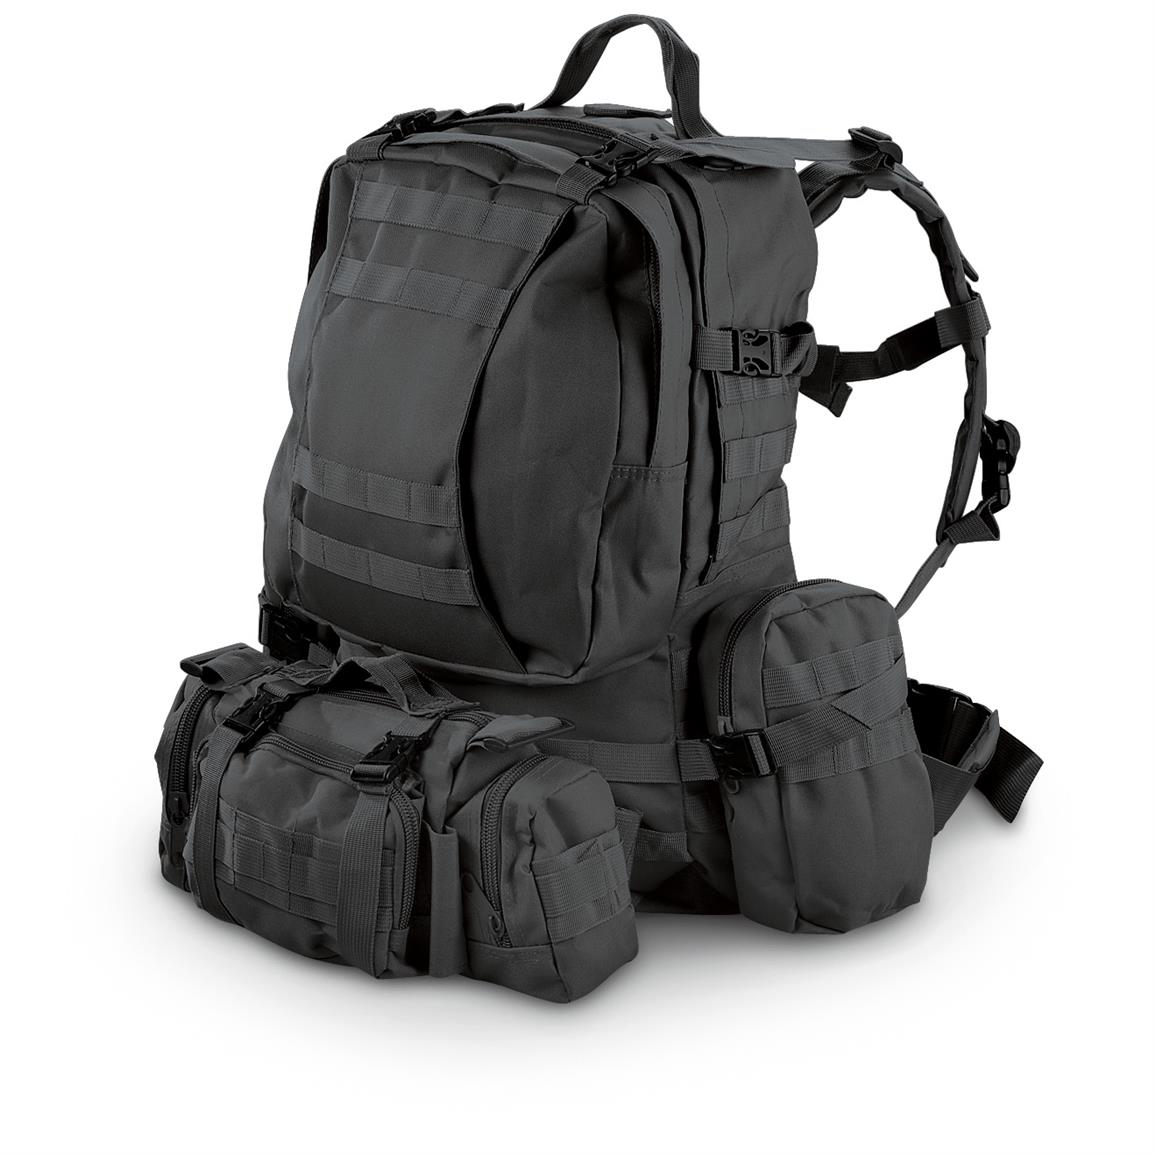 Black 3 Day Backpack